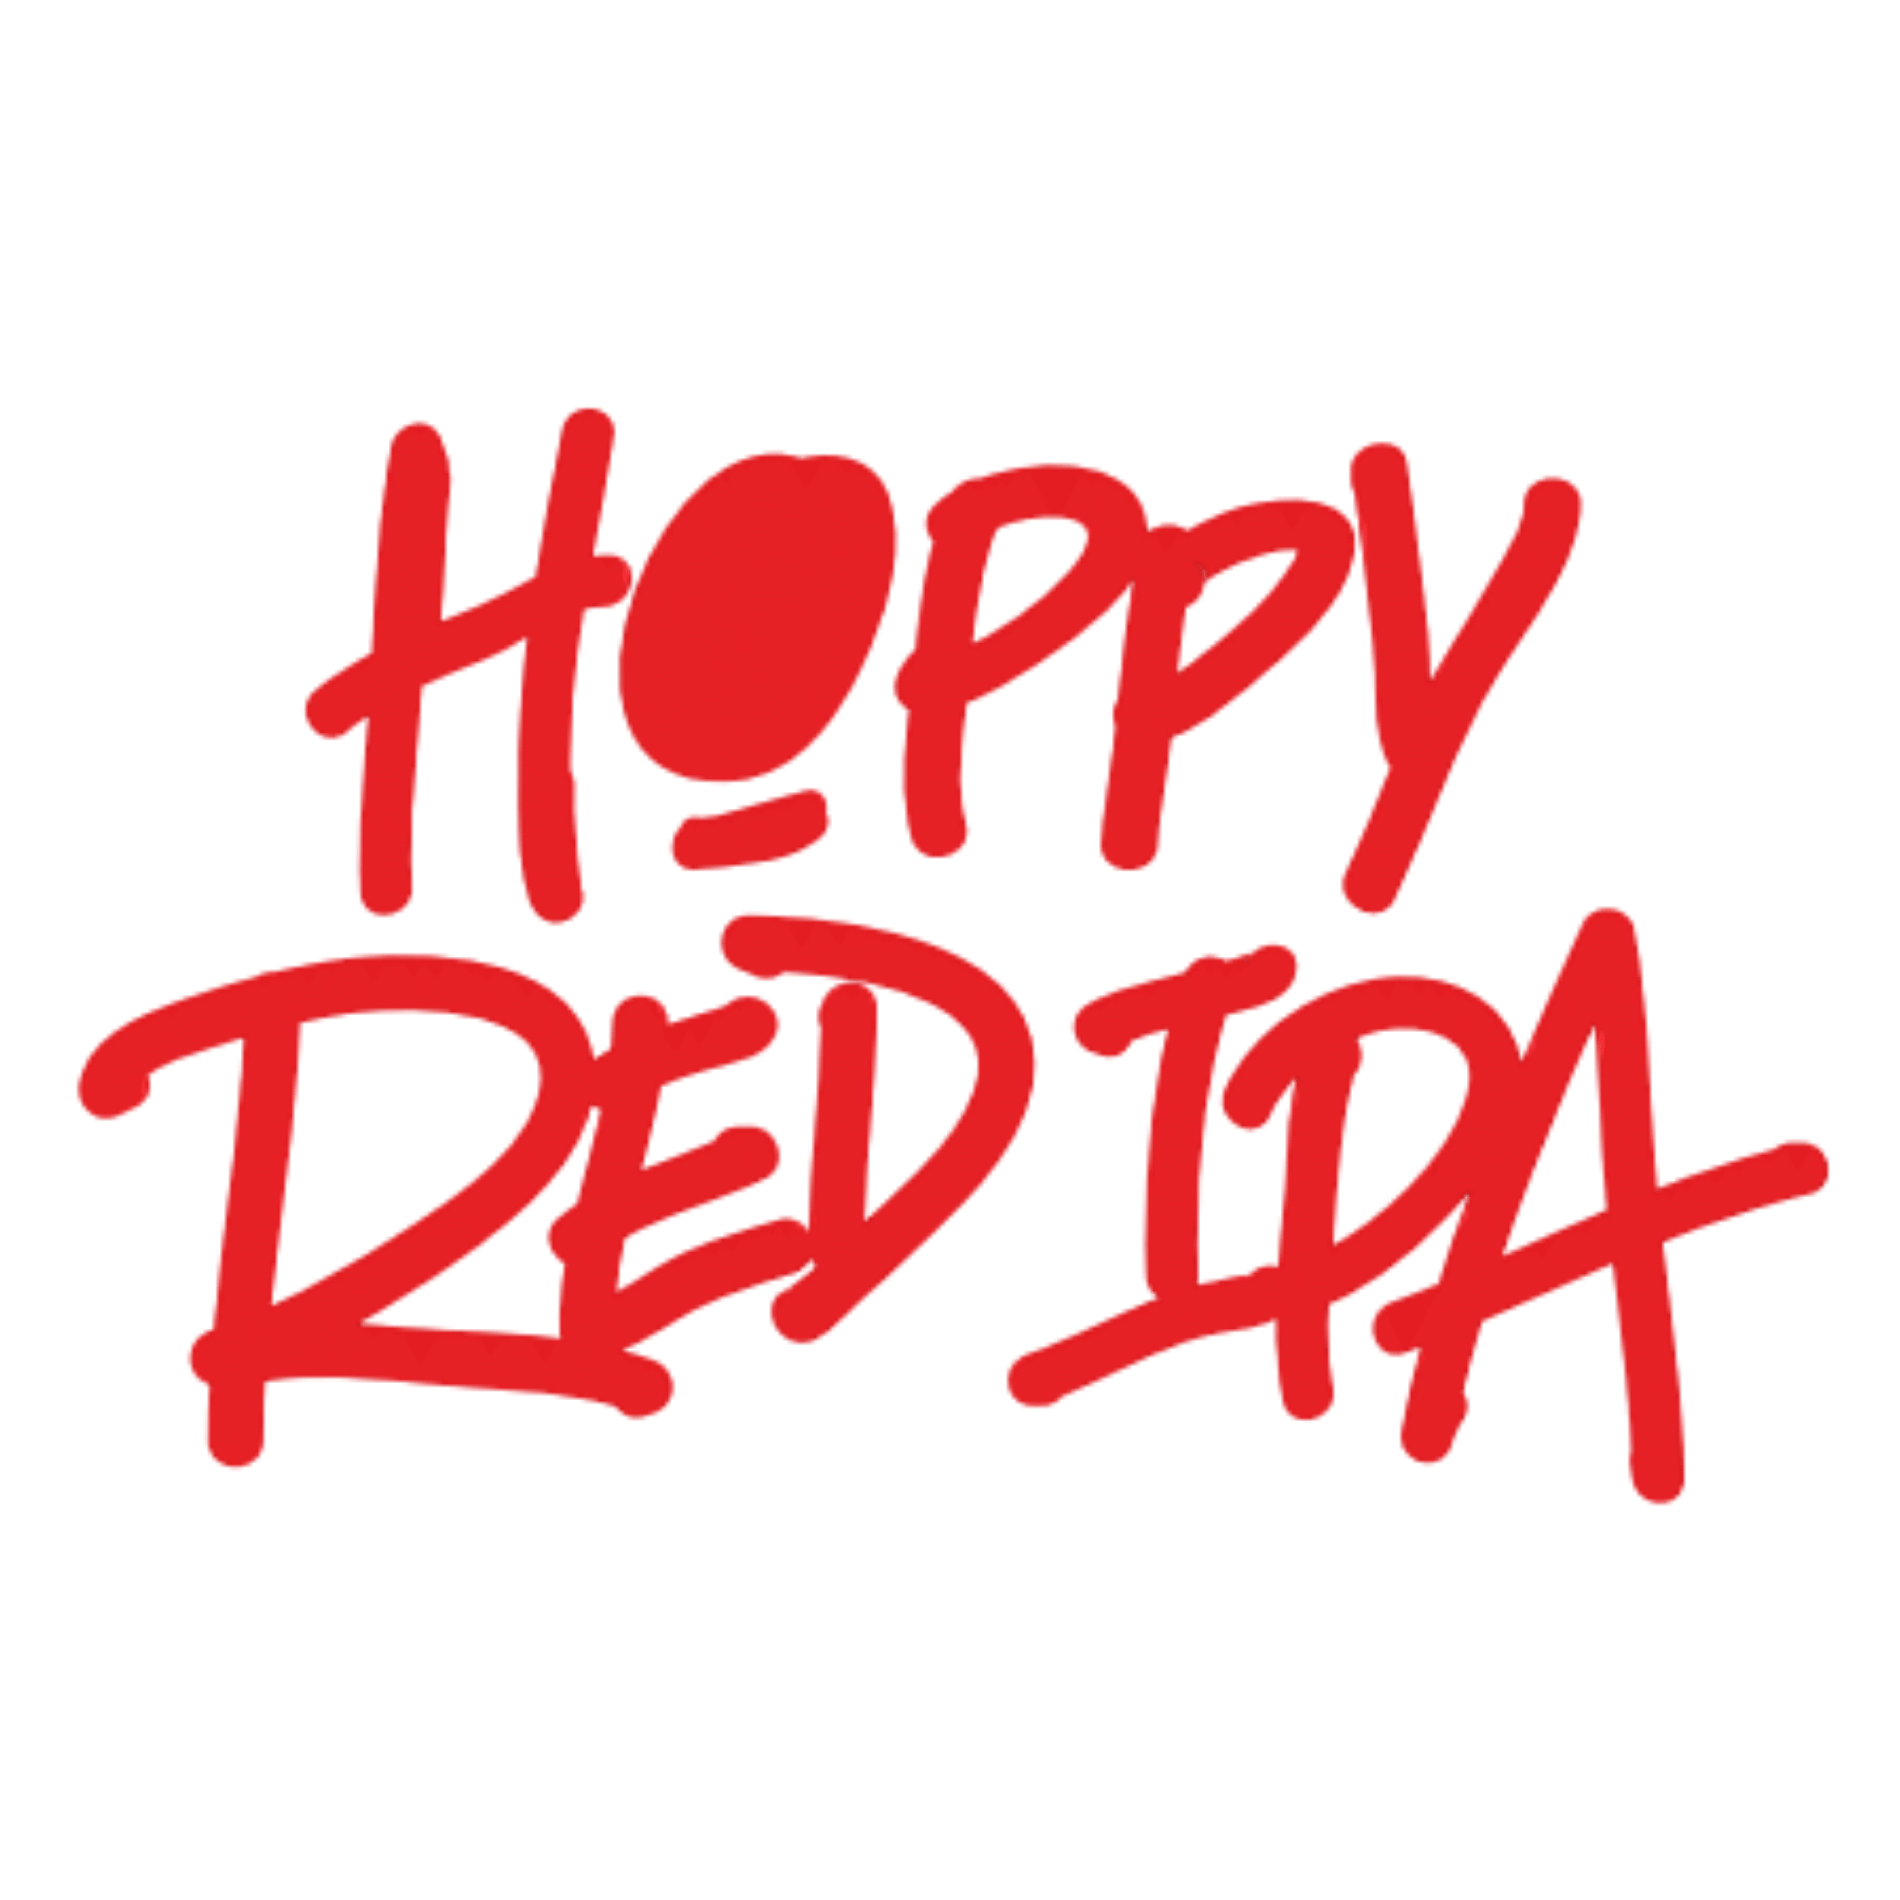 Hop For fun - Hoppy Red Ipa